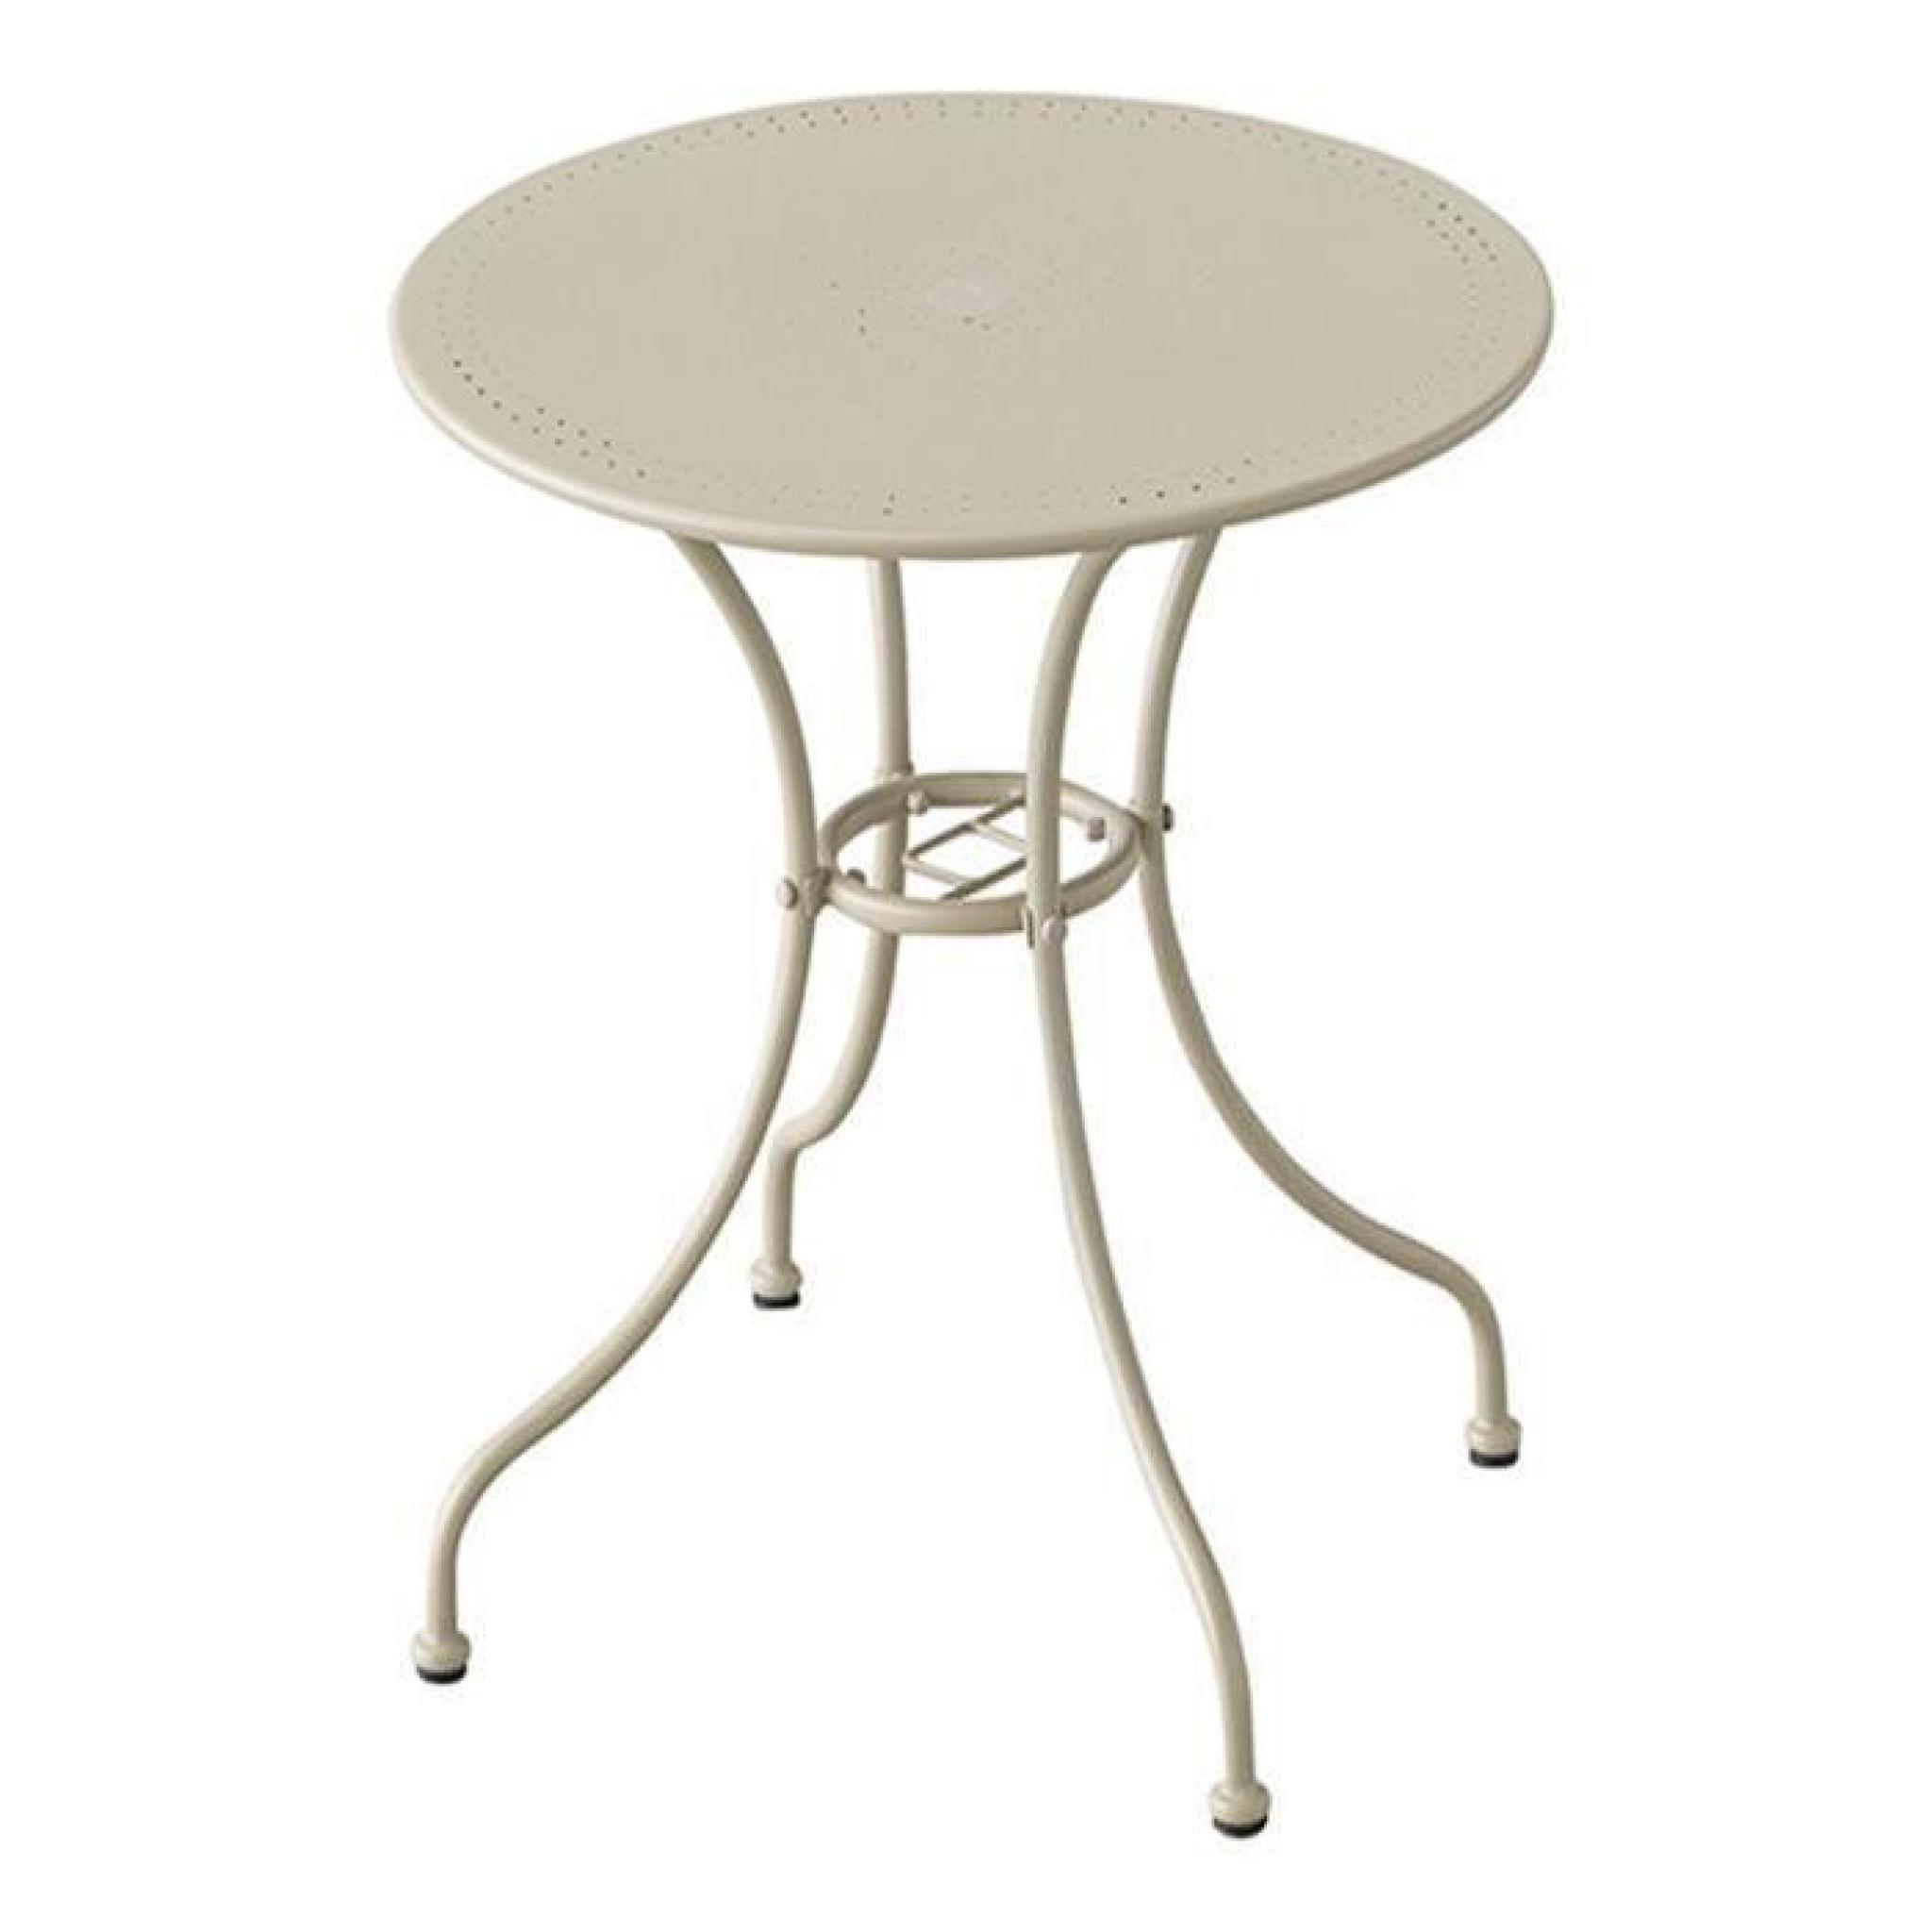 Table Manuela ronde Taupe 2 places - Dim : 70 x 71